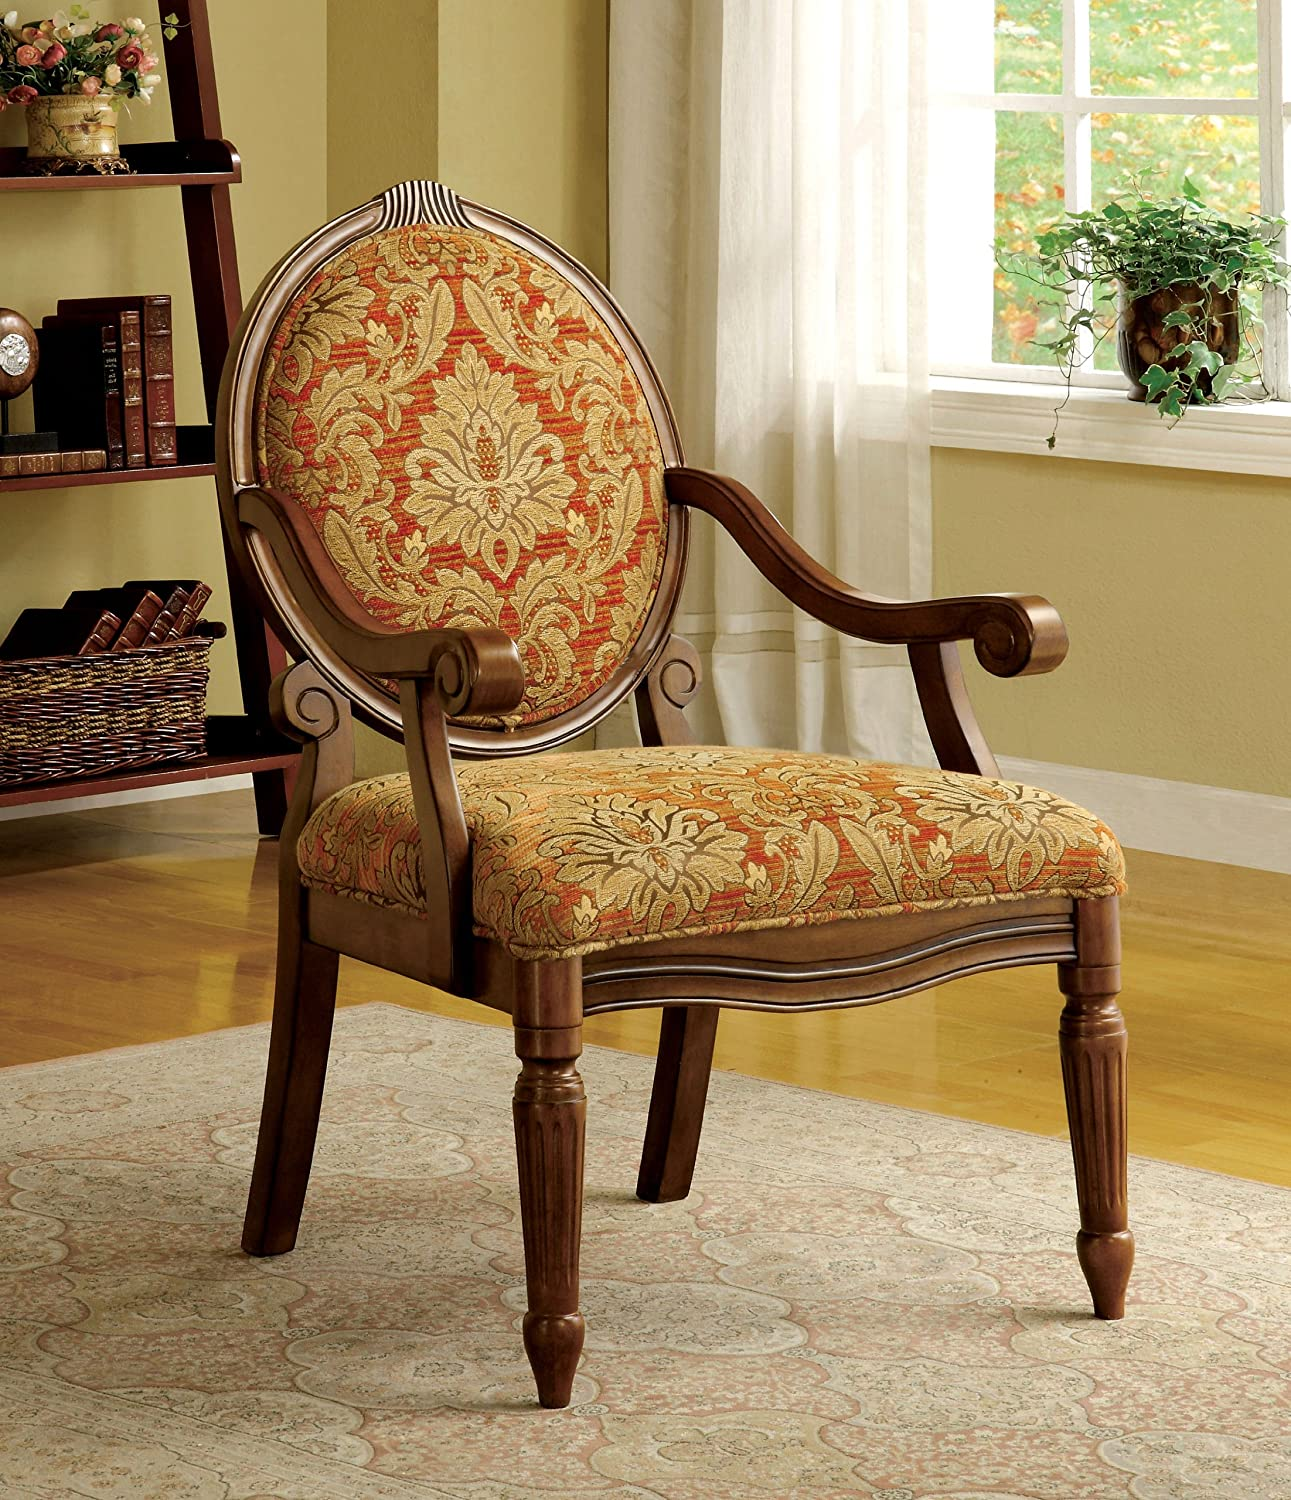 Amazon.com: Furniture of America Gwyneth Victorian Style Padded ...